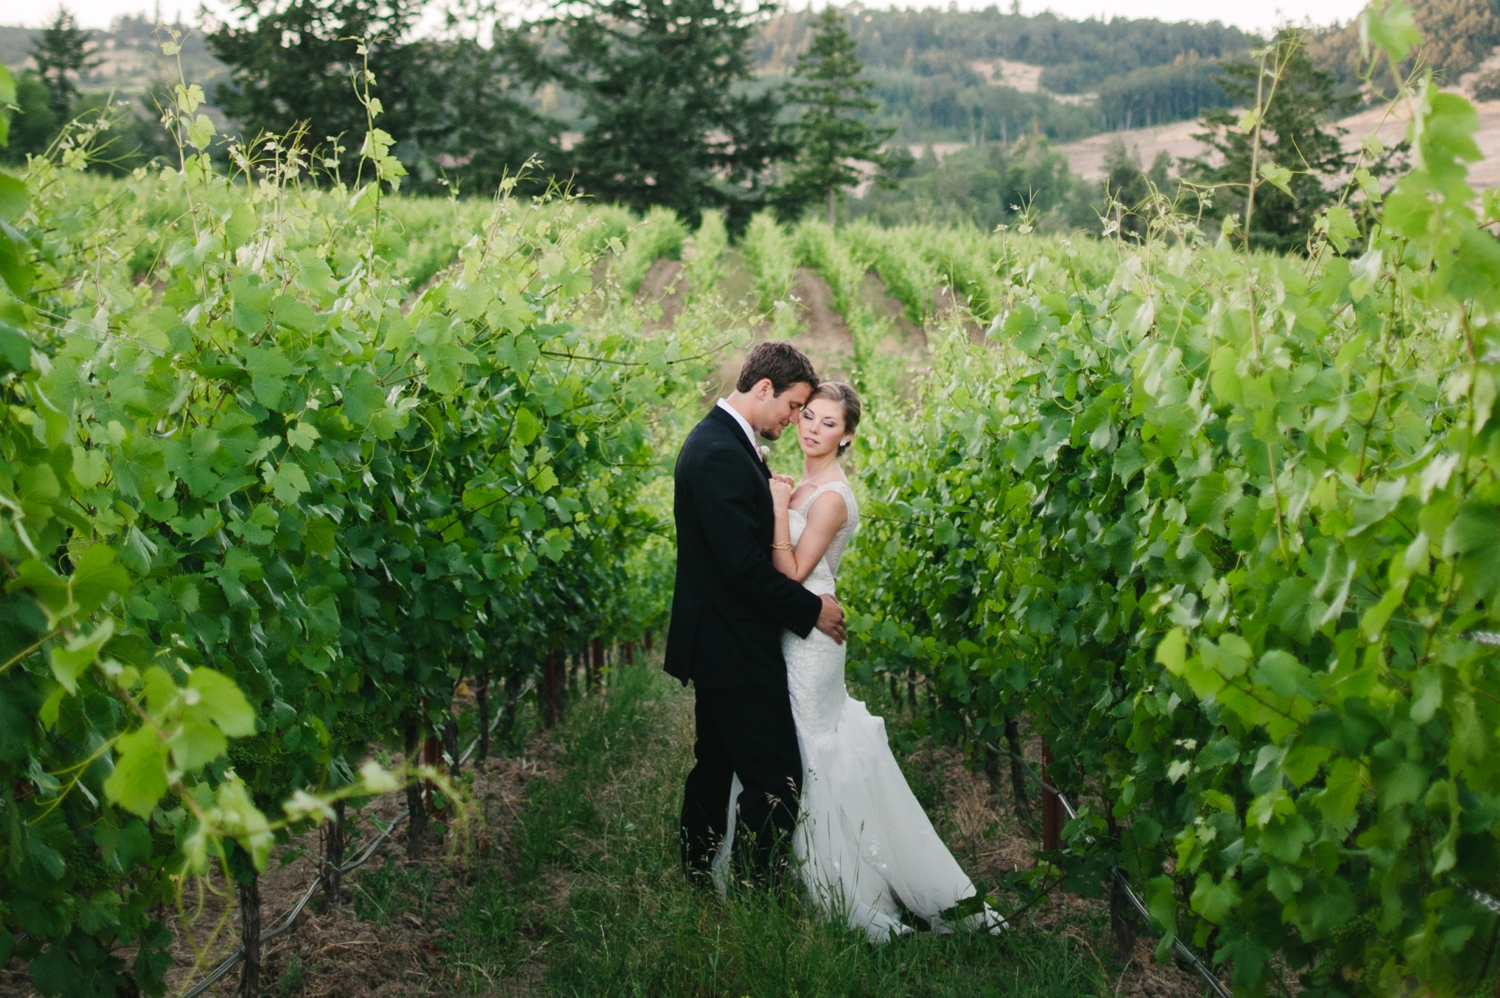 zenith vineyard wedding christa taylor_0587.jpg